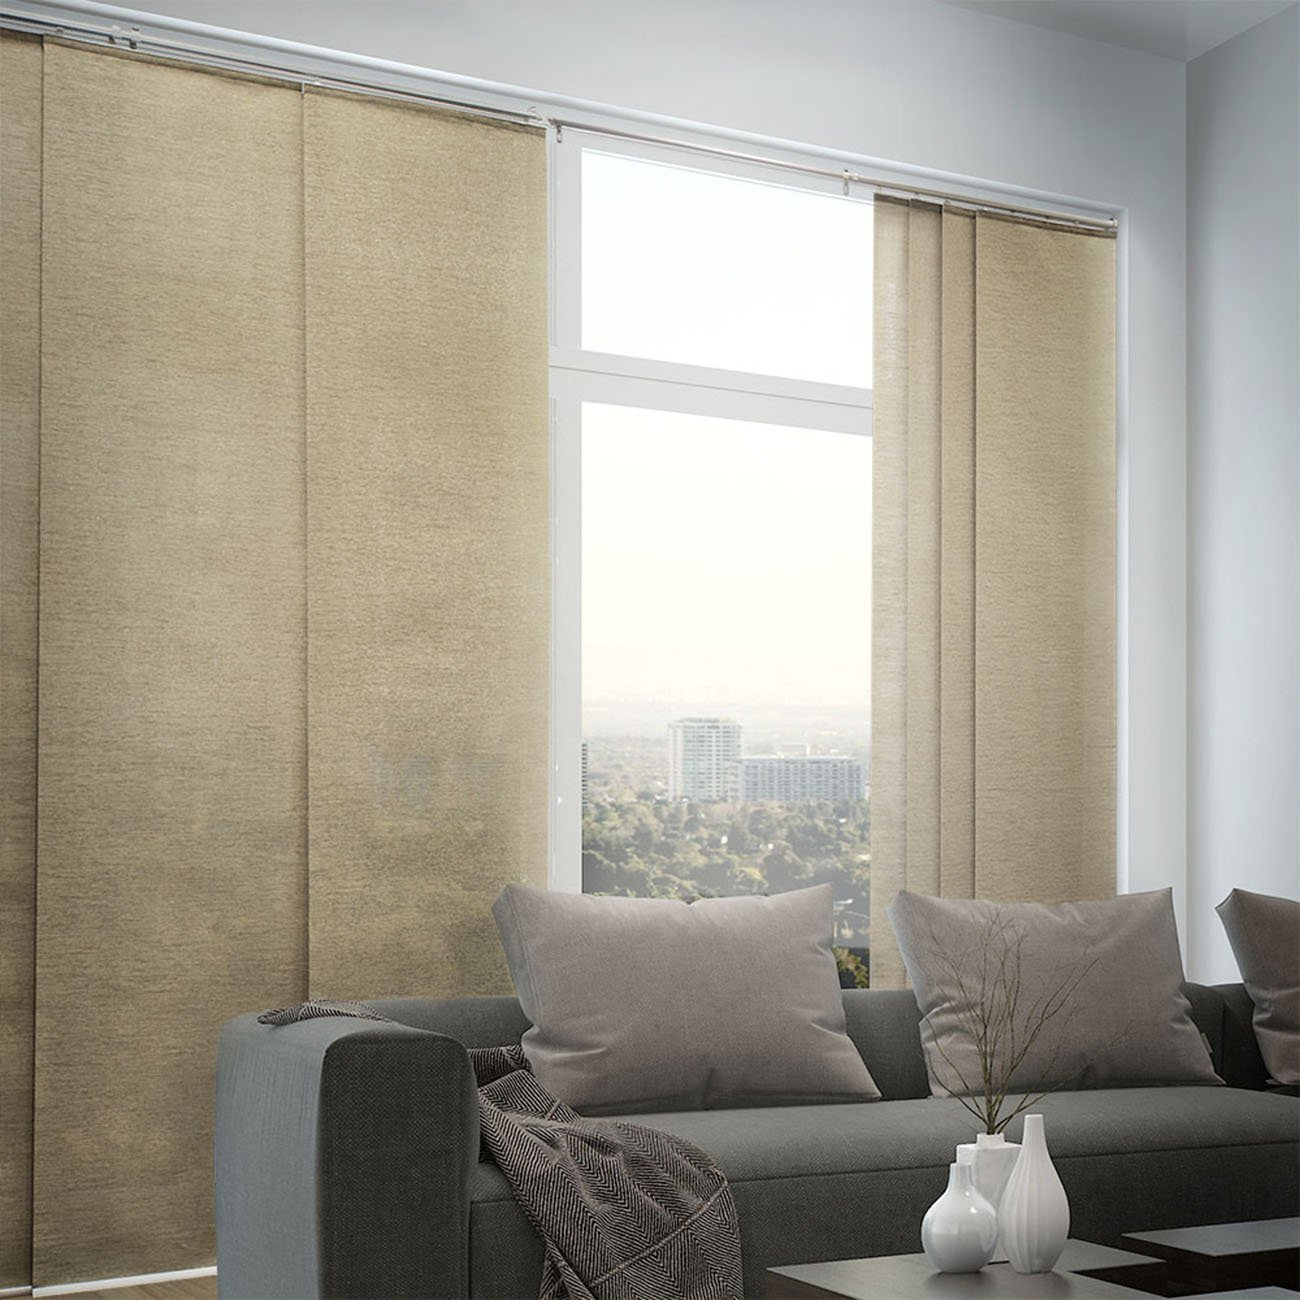 Chicology Adjustable Sliding Panels, Cut to Length Vertical Blinds, Nevada Timberwolf (Natural Woven) - Up to 80''W X 96''H